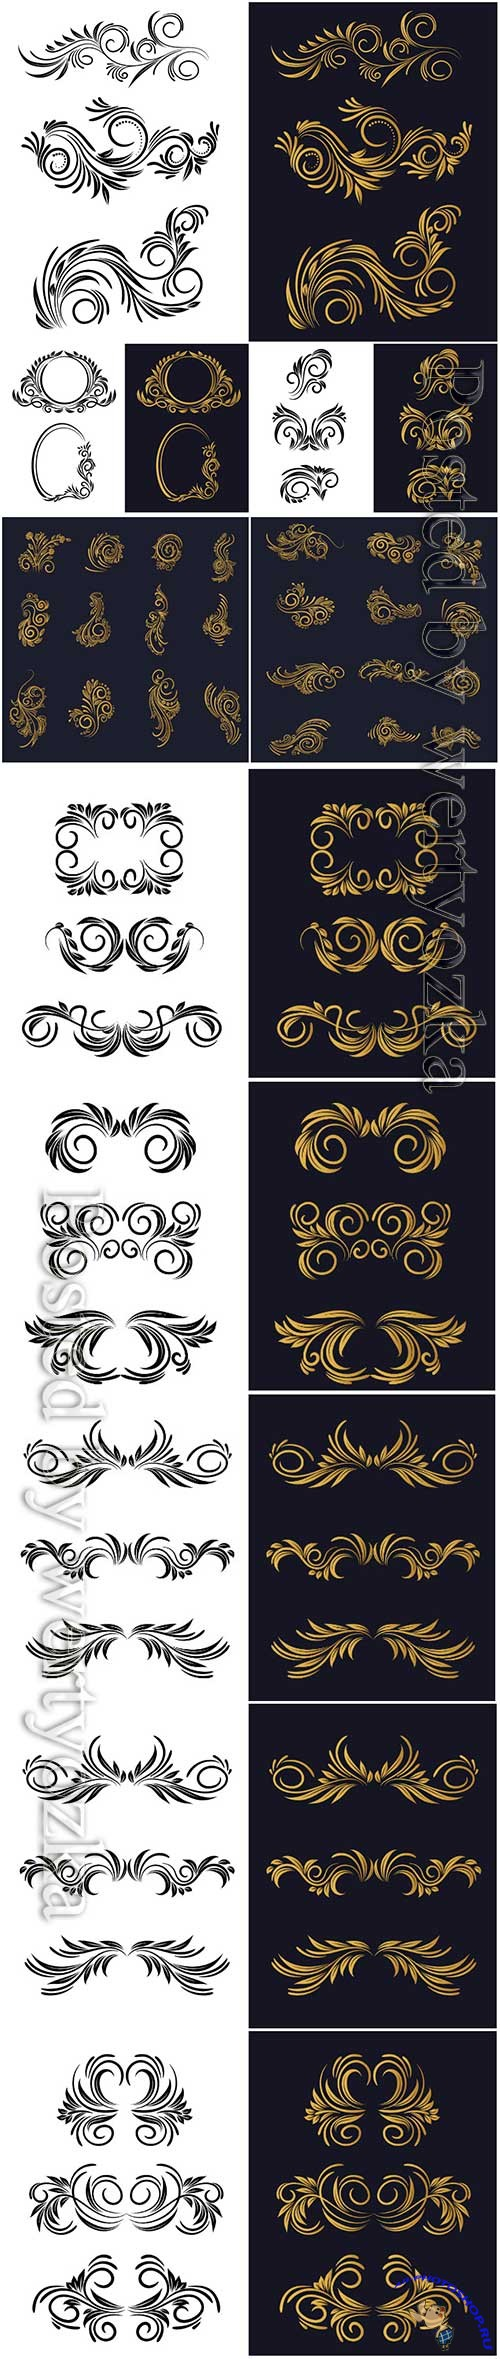 Elegant decorative ornamental floral decorative set design